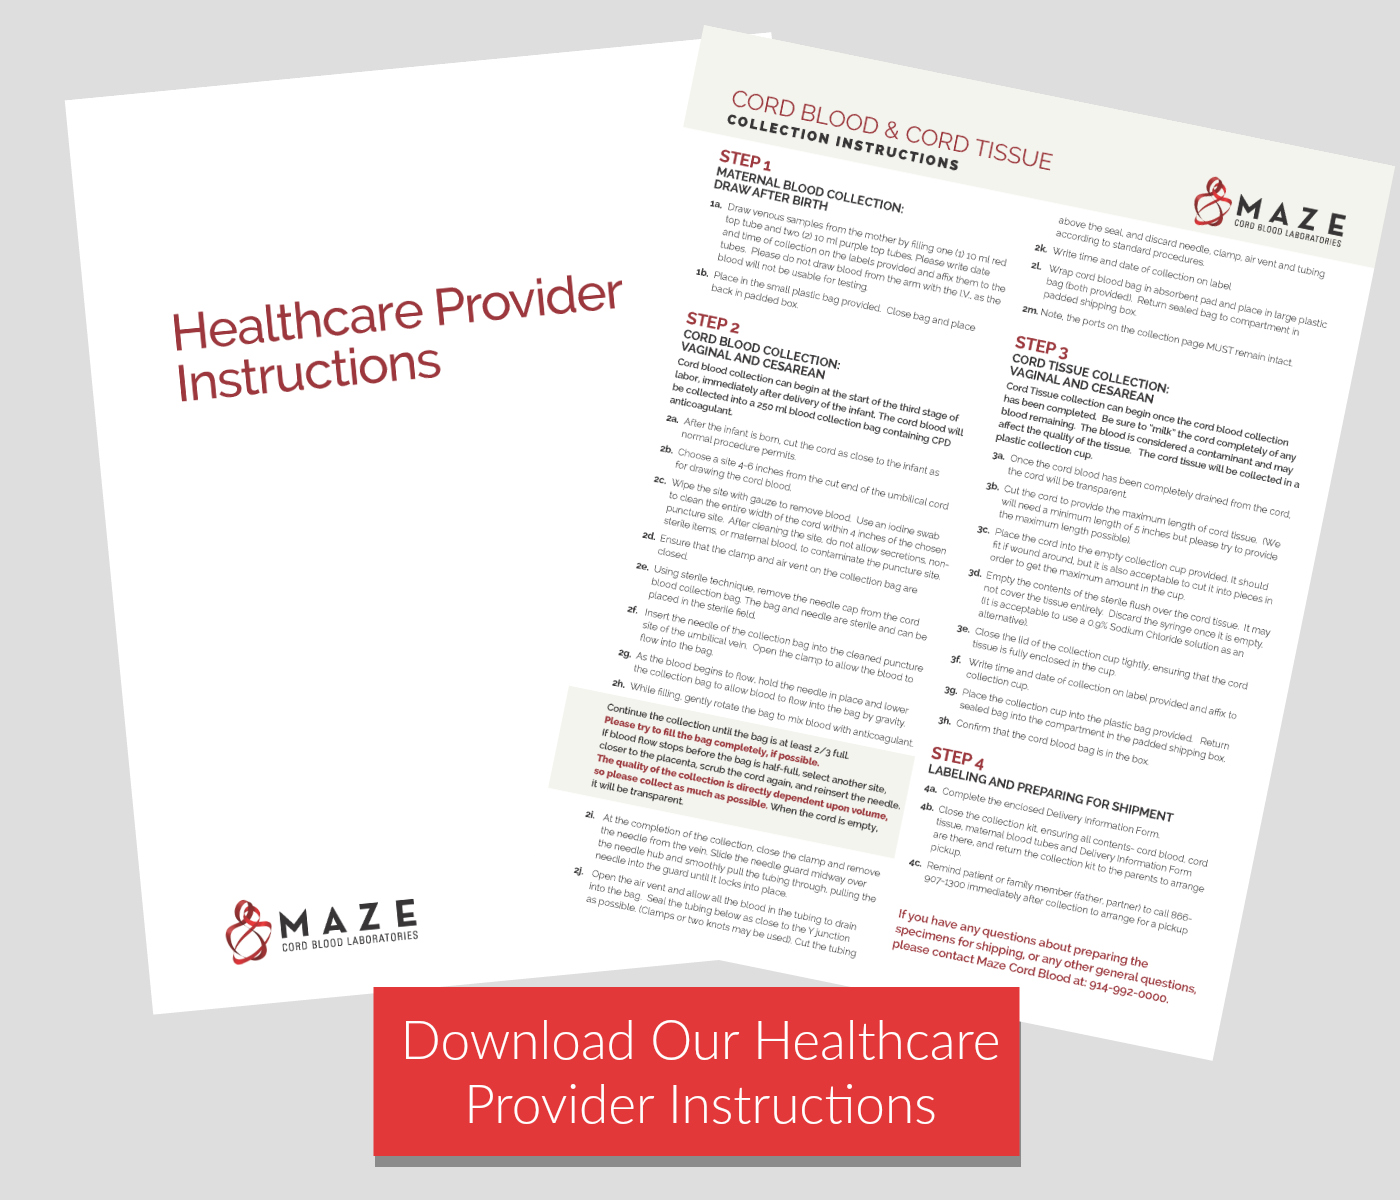 Download our healthcare provider instructions